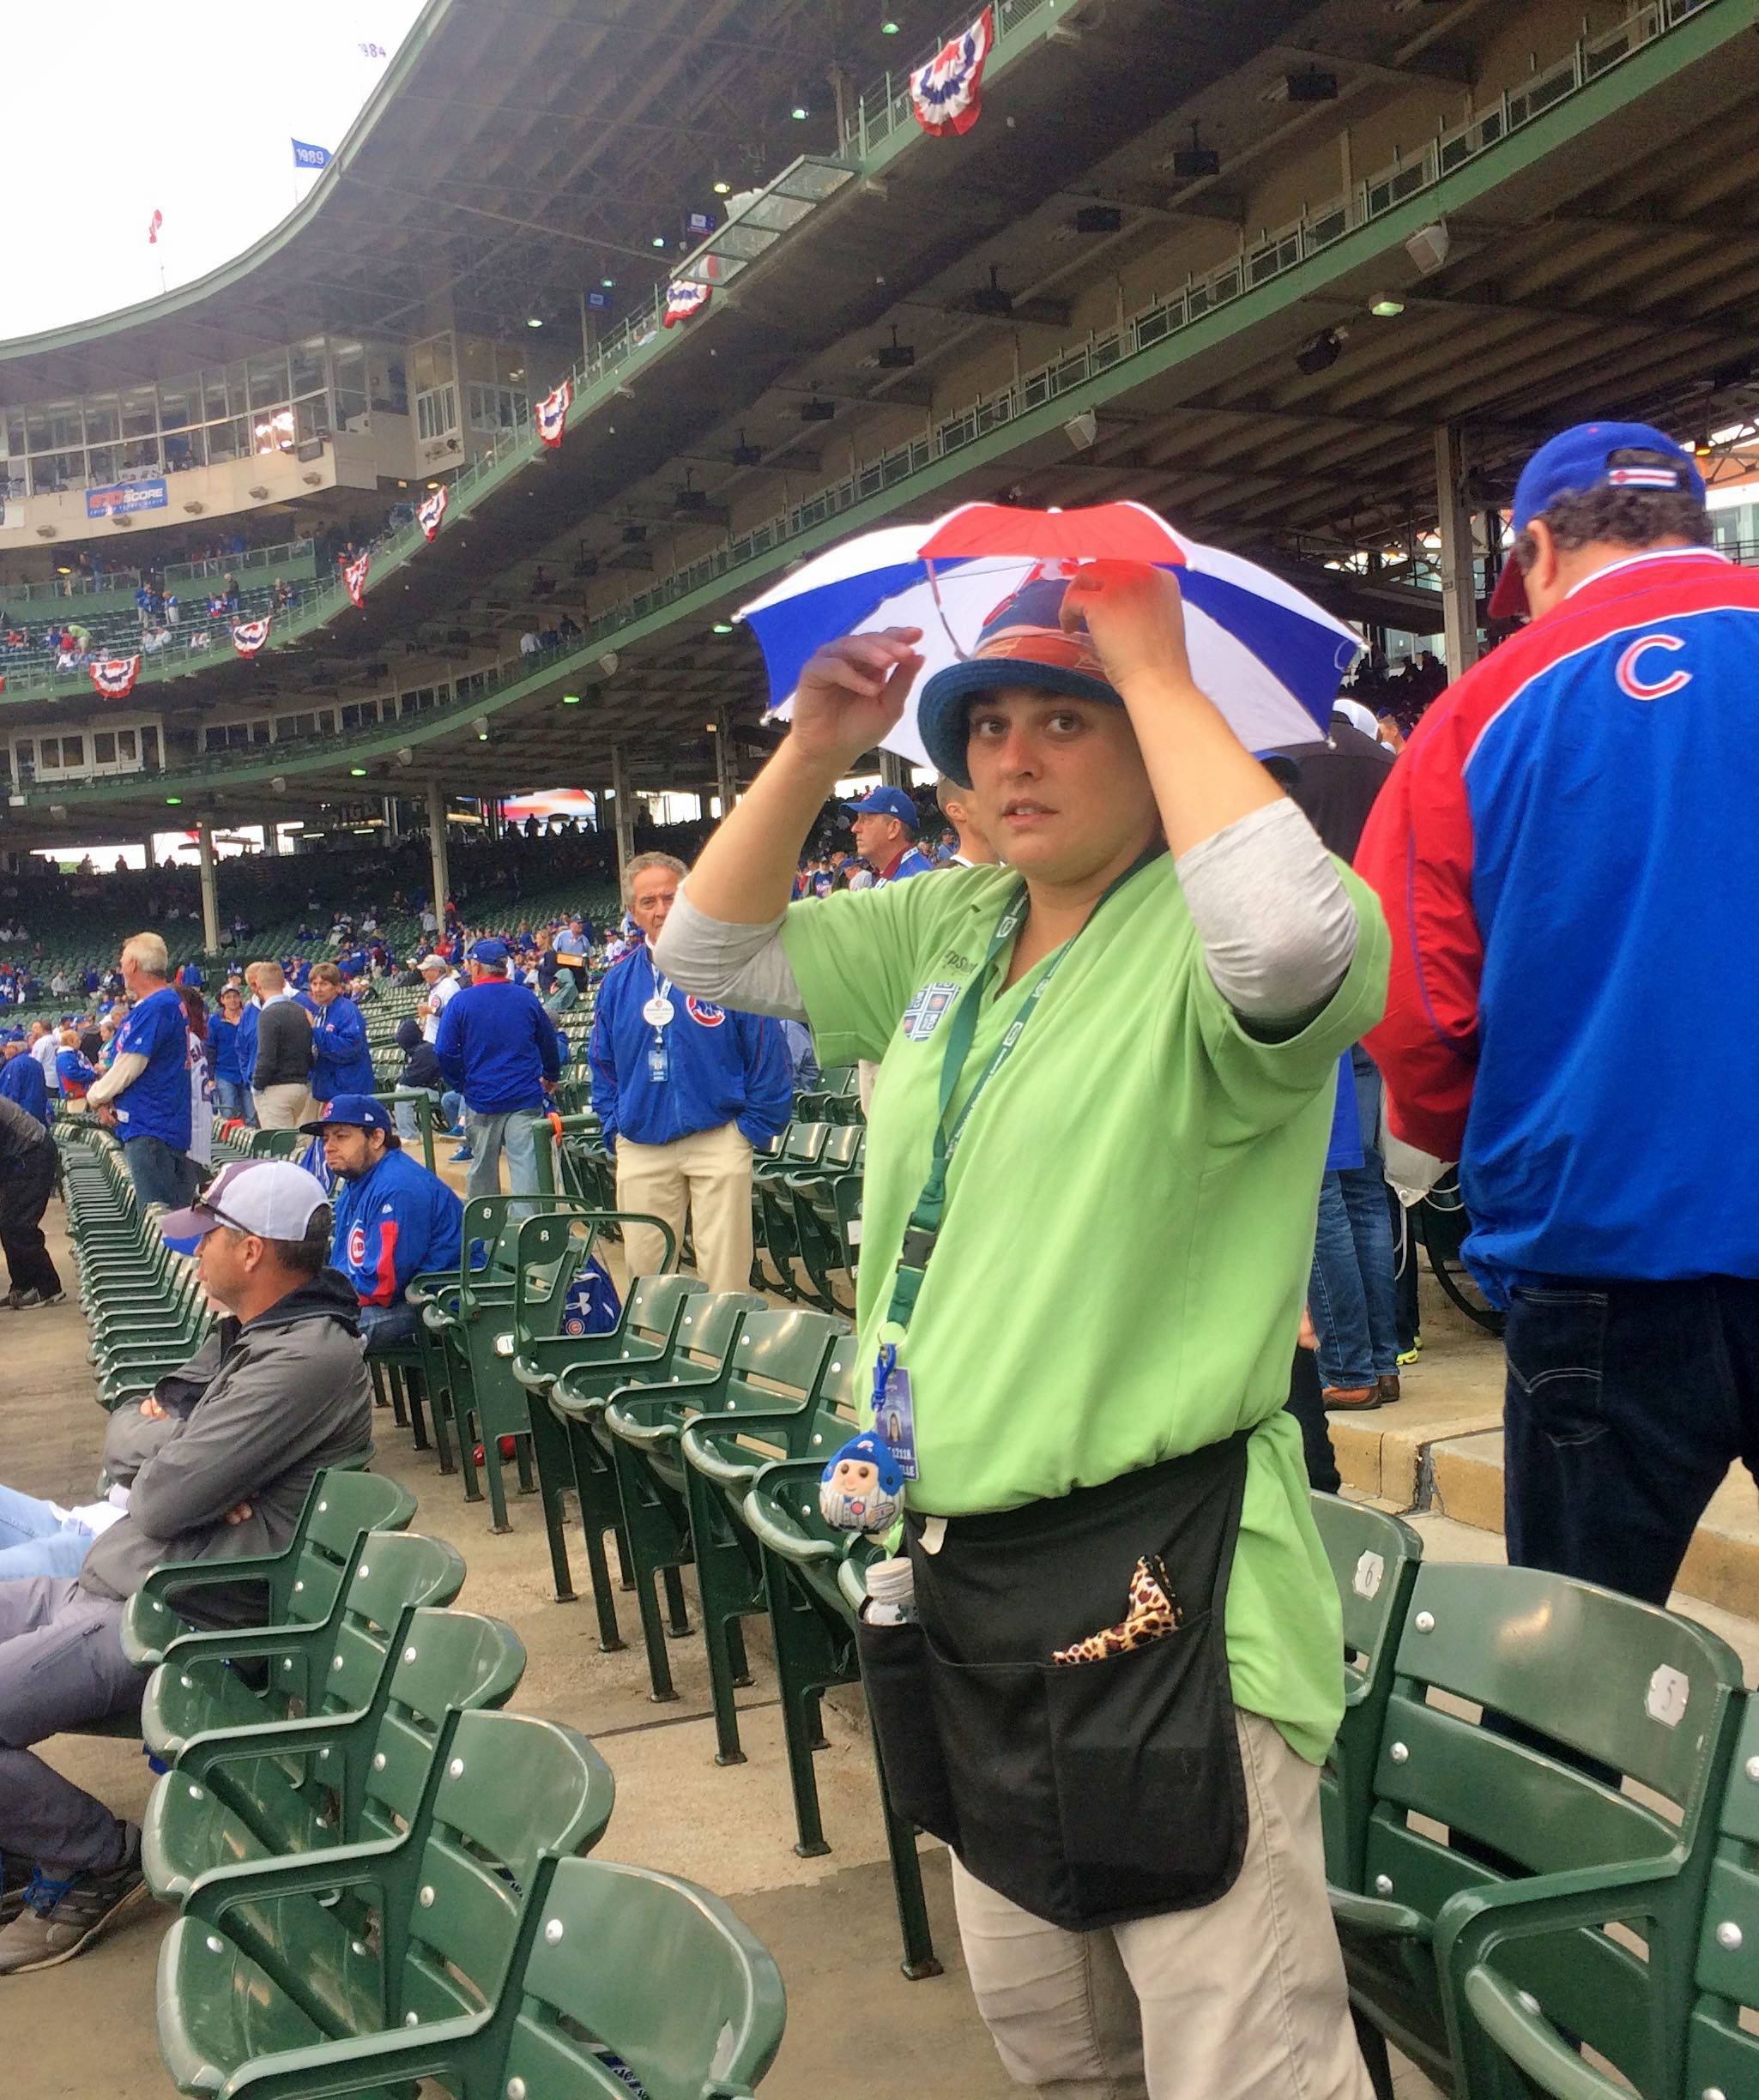 constable  once a friend  rain keeps cubs from clinching